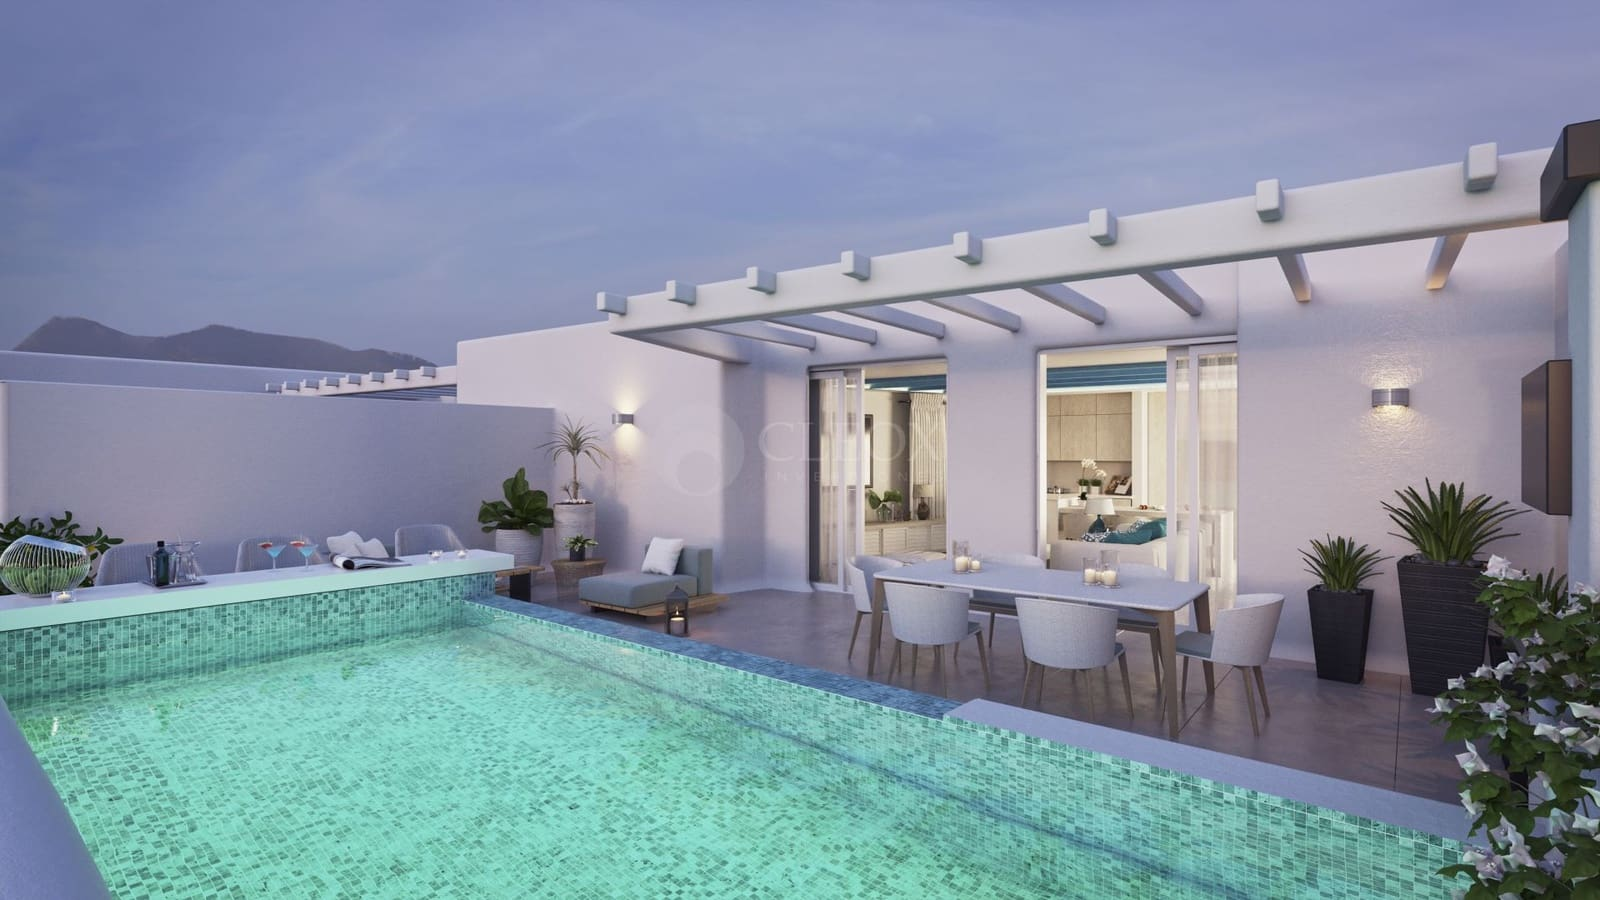 2 bedroom Apartment for sale in Marbella with pool garage - € 770,000 (Ref: 4463782)